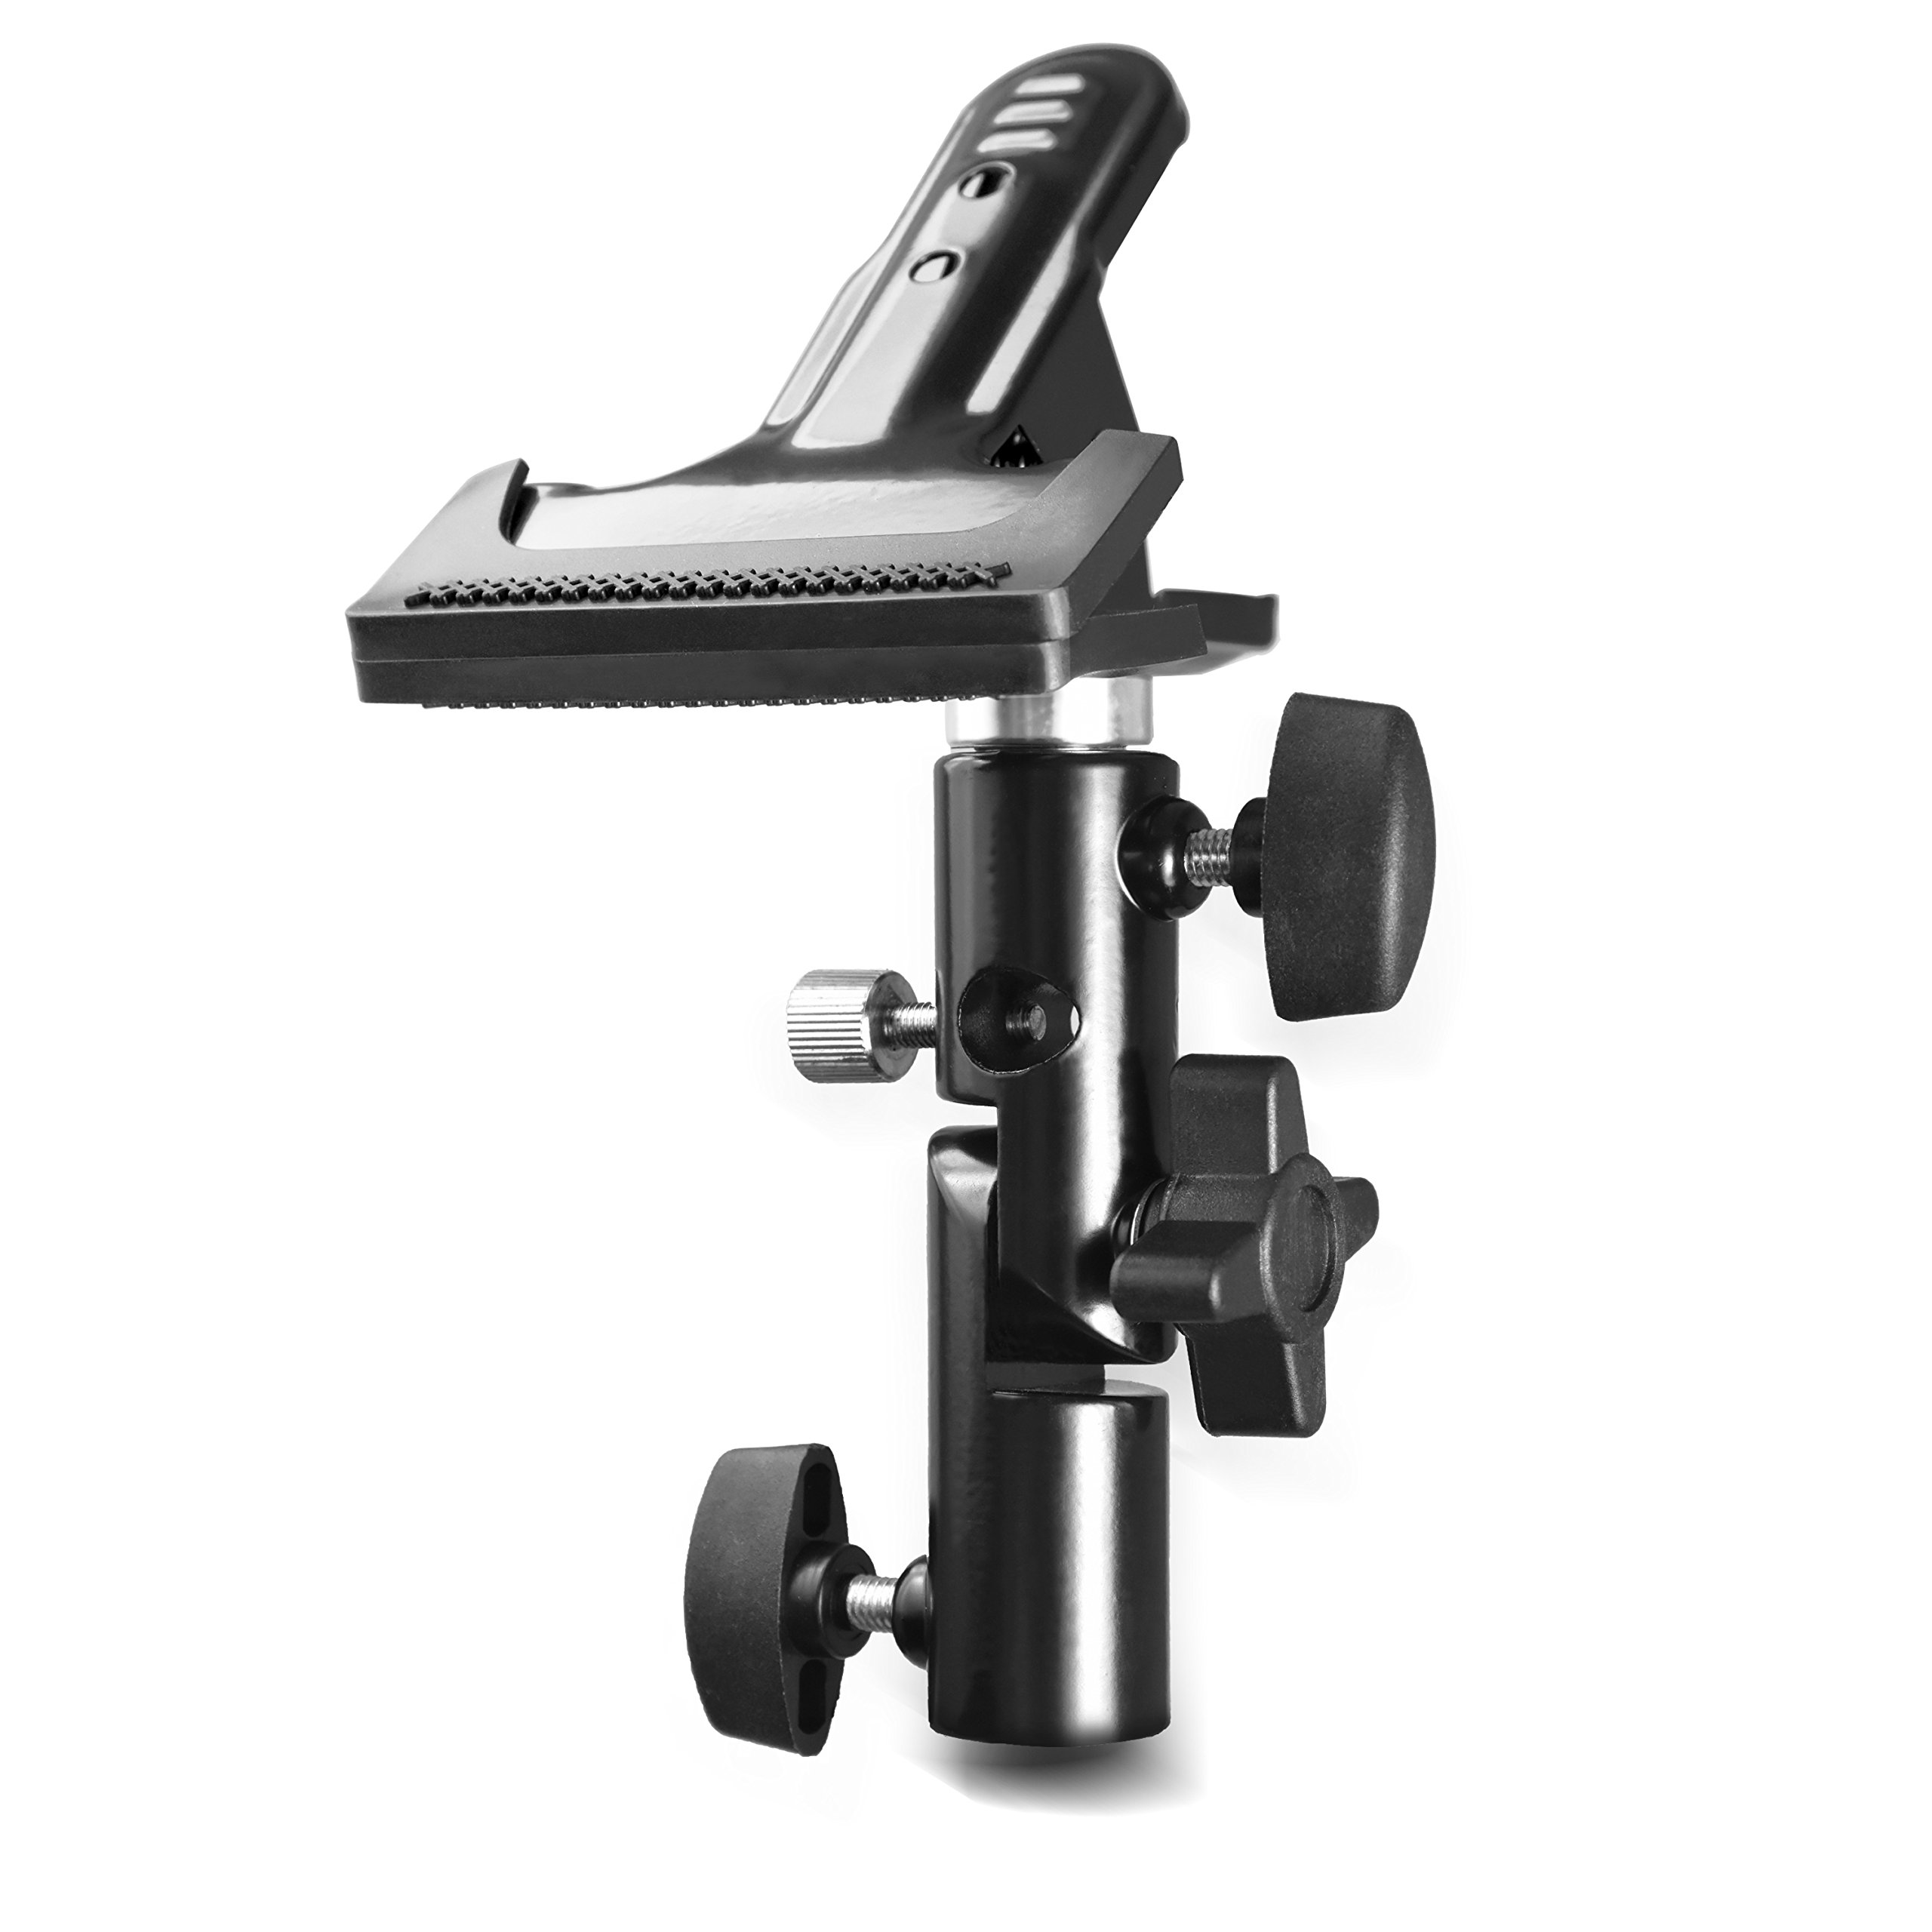 Slow Dolphin Photo Studio Heavy Duty Metal Clamp Holder with 5/8 Light Stand and Umbrella Reflector Holder by SLOW DOLPHIN